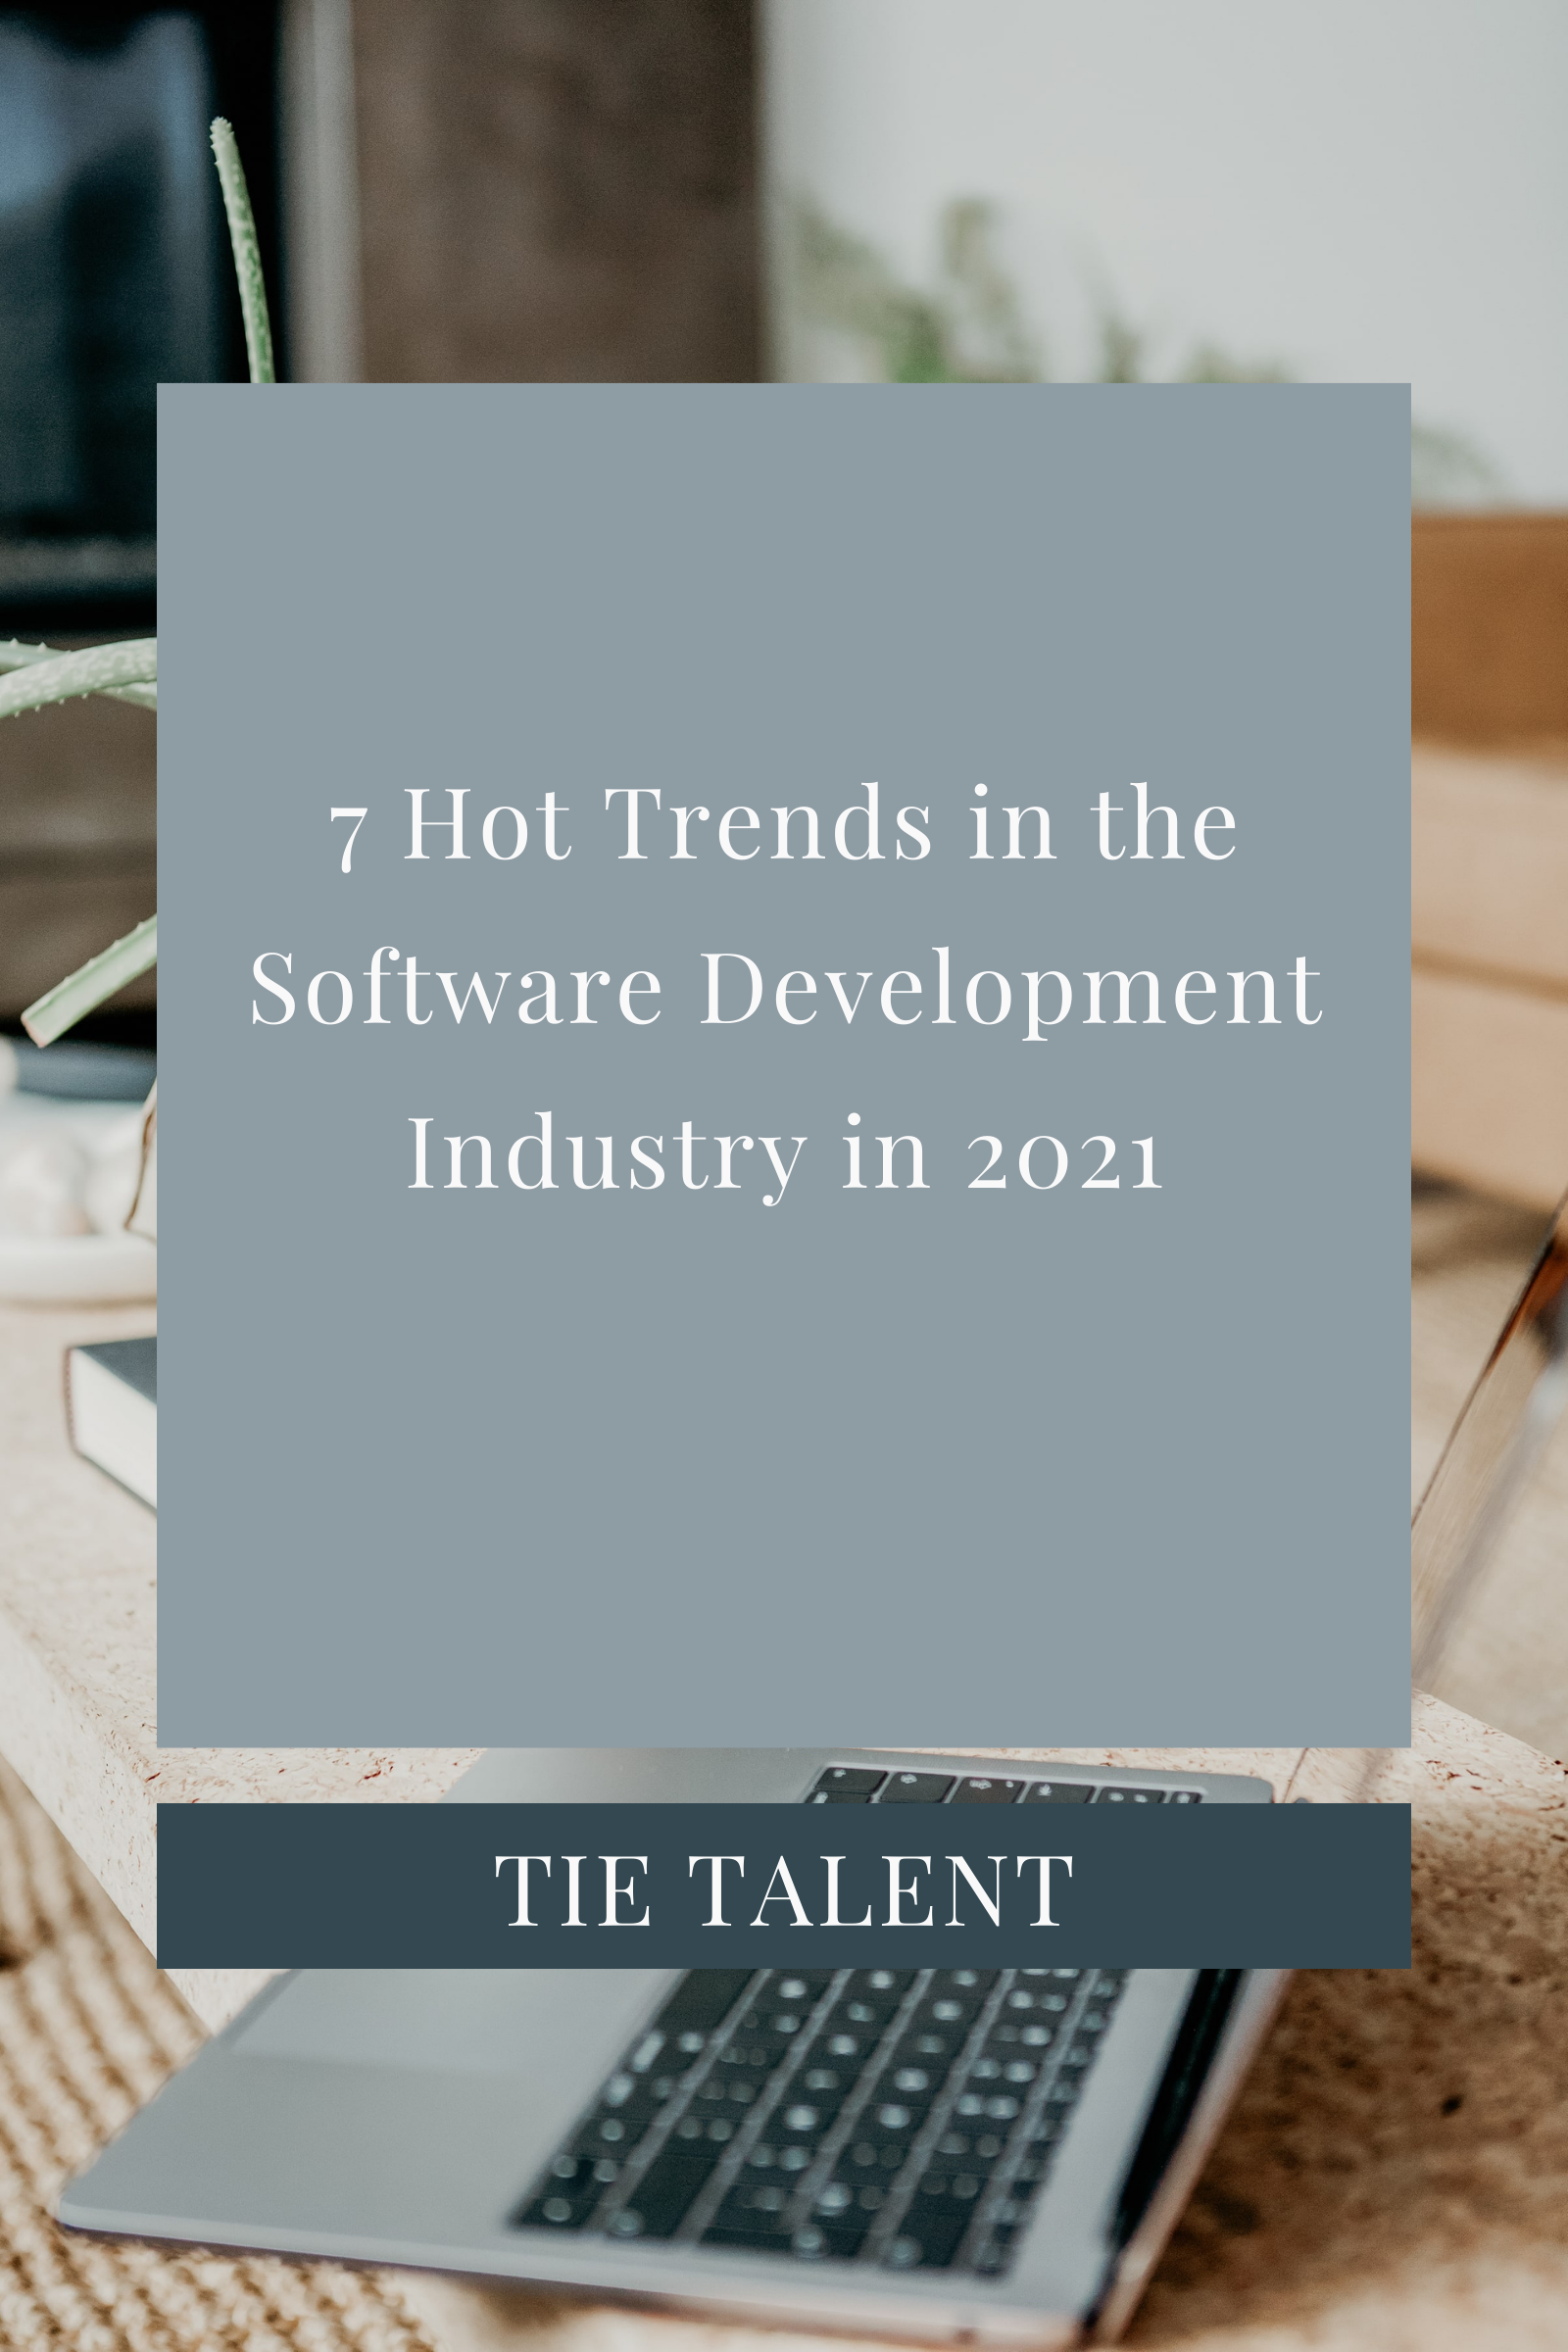 7 Hot Trends in the Software Development Industry in 2021